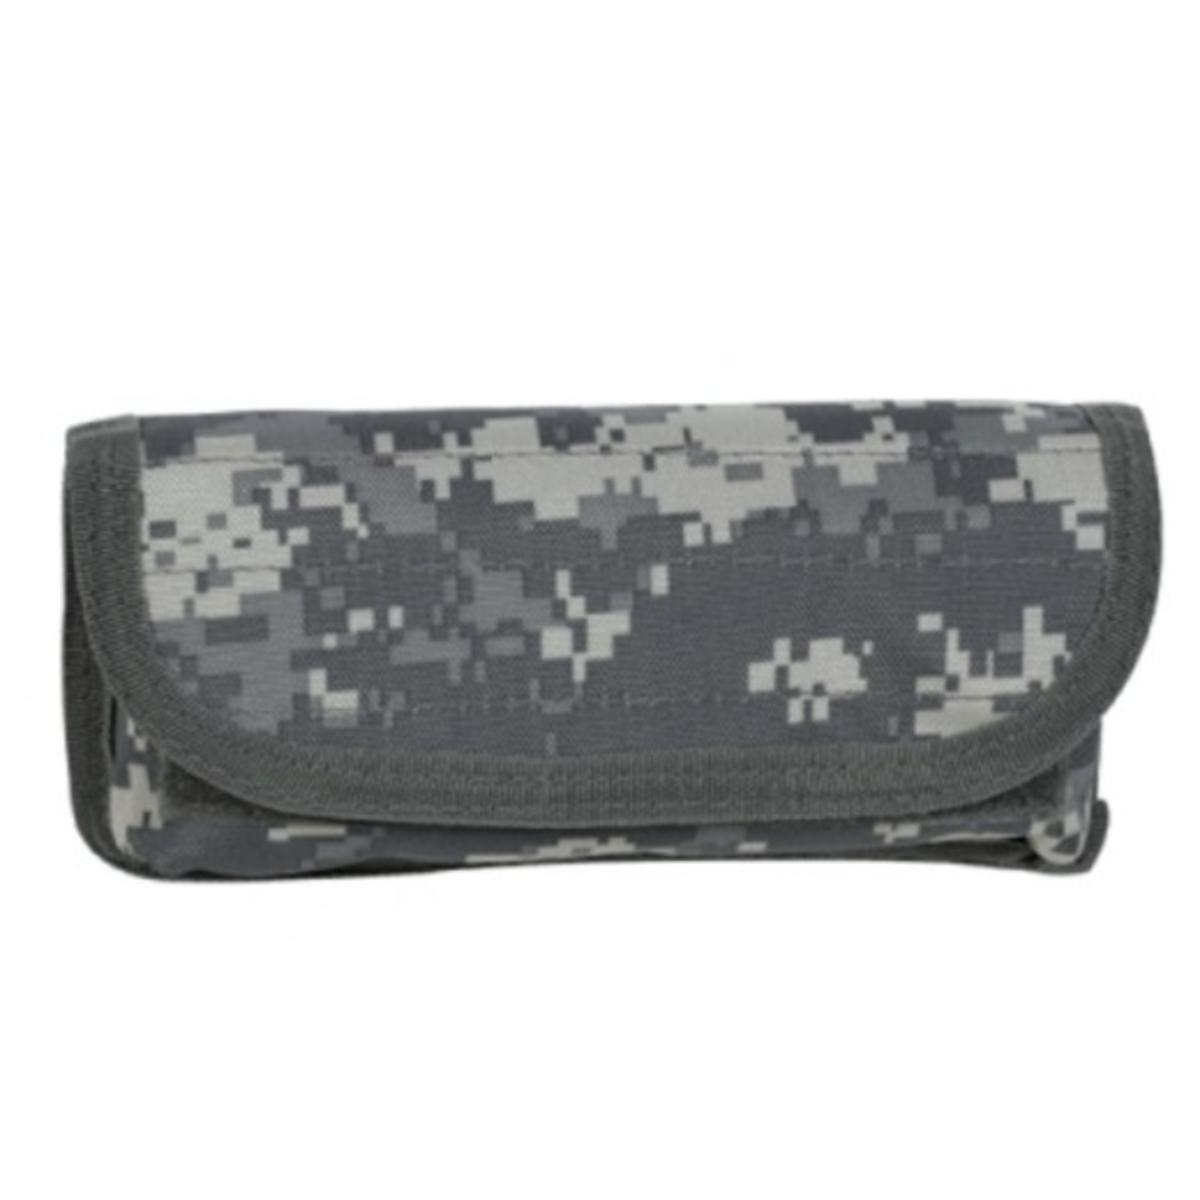 20 Round Rifle Shooter's Pouch w/Velcro Panel On Back